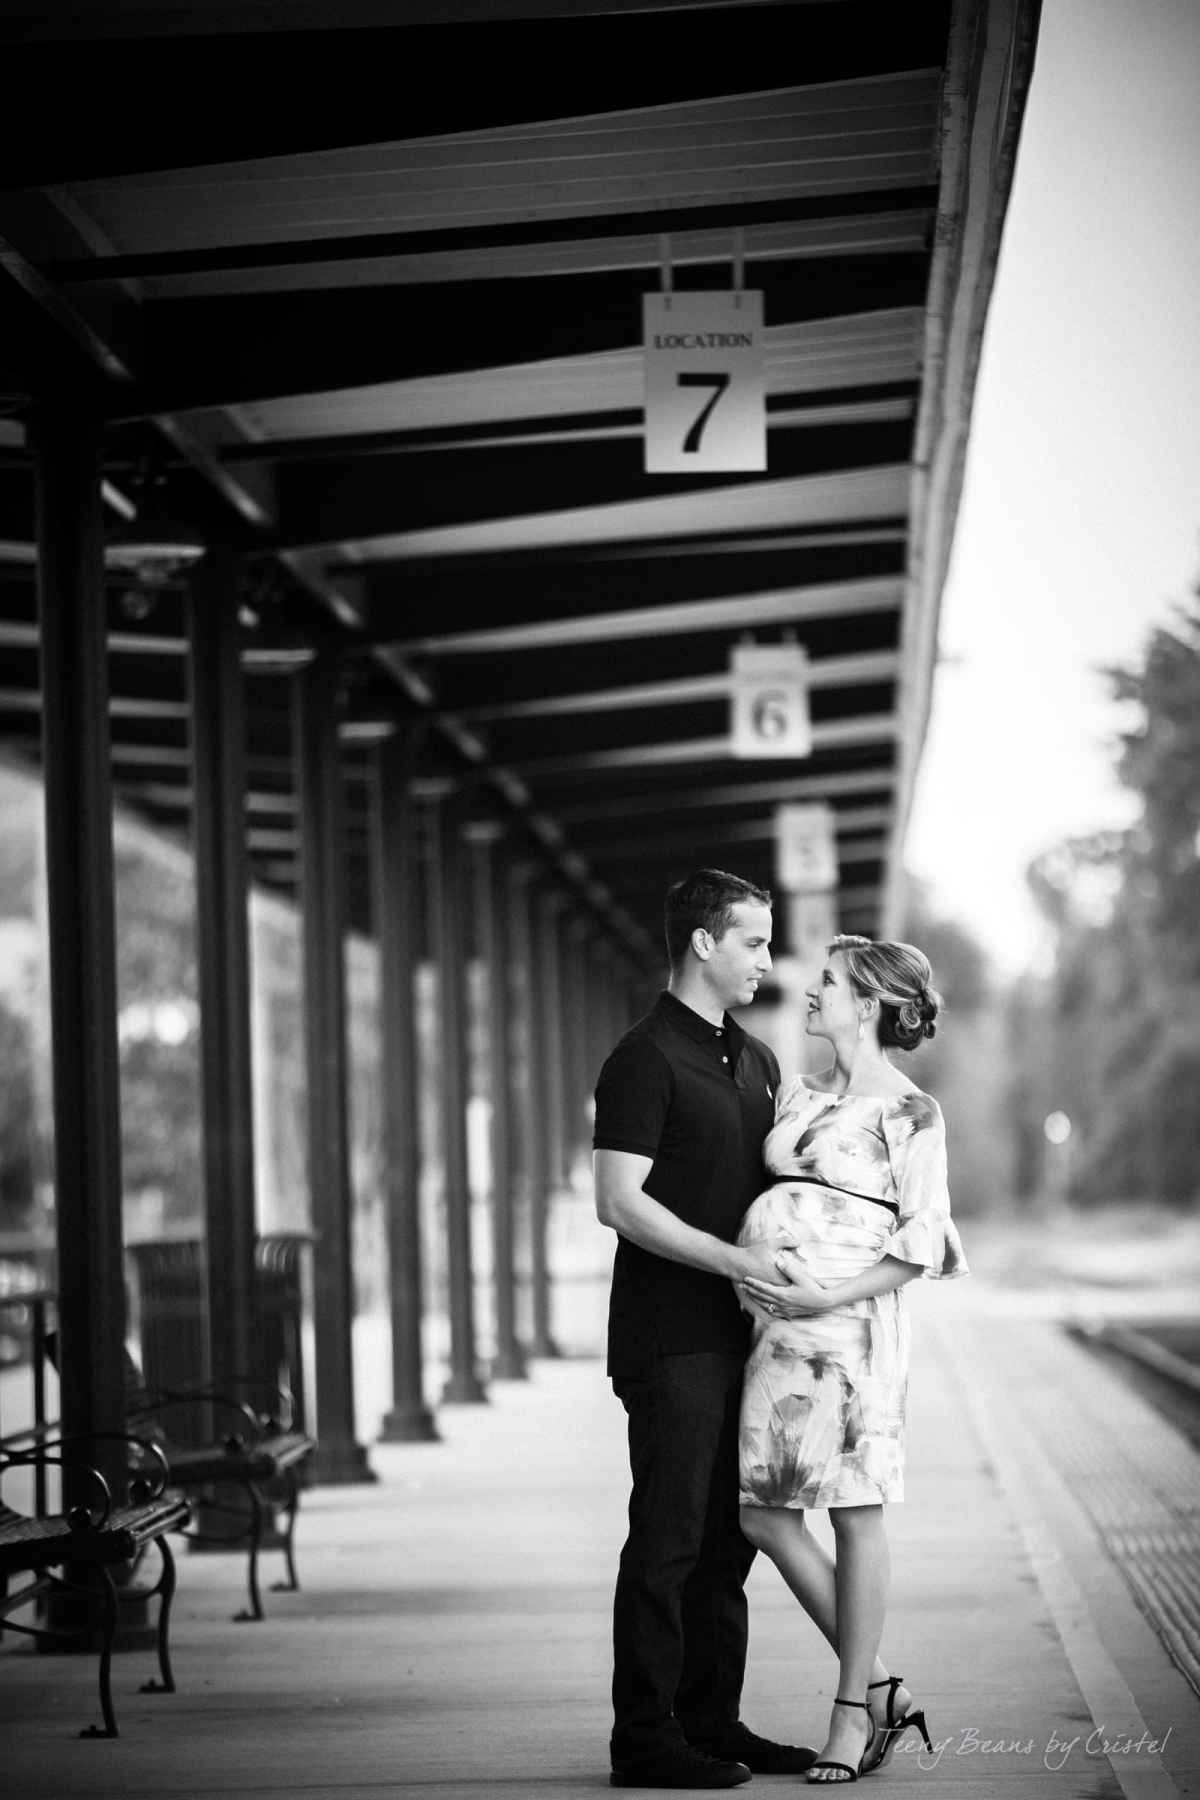 Raleigh-Maternity-Photography-Axia-Zach-1 southern pines maternity photographer - axia & zach